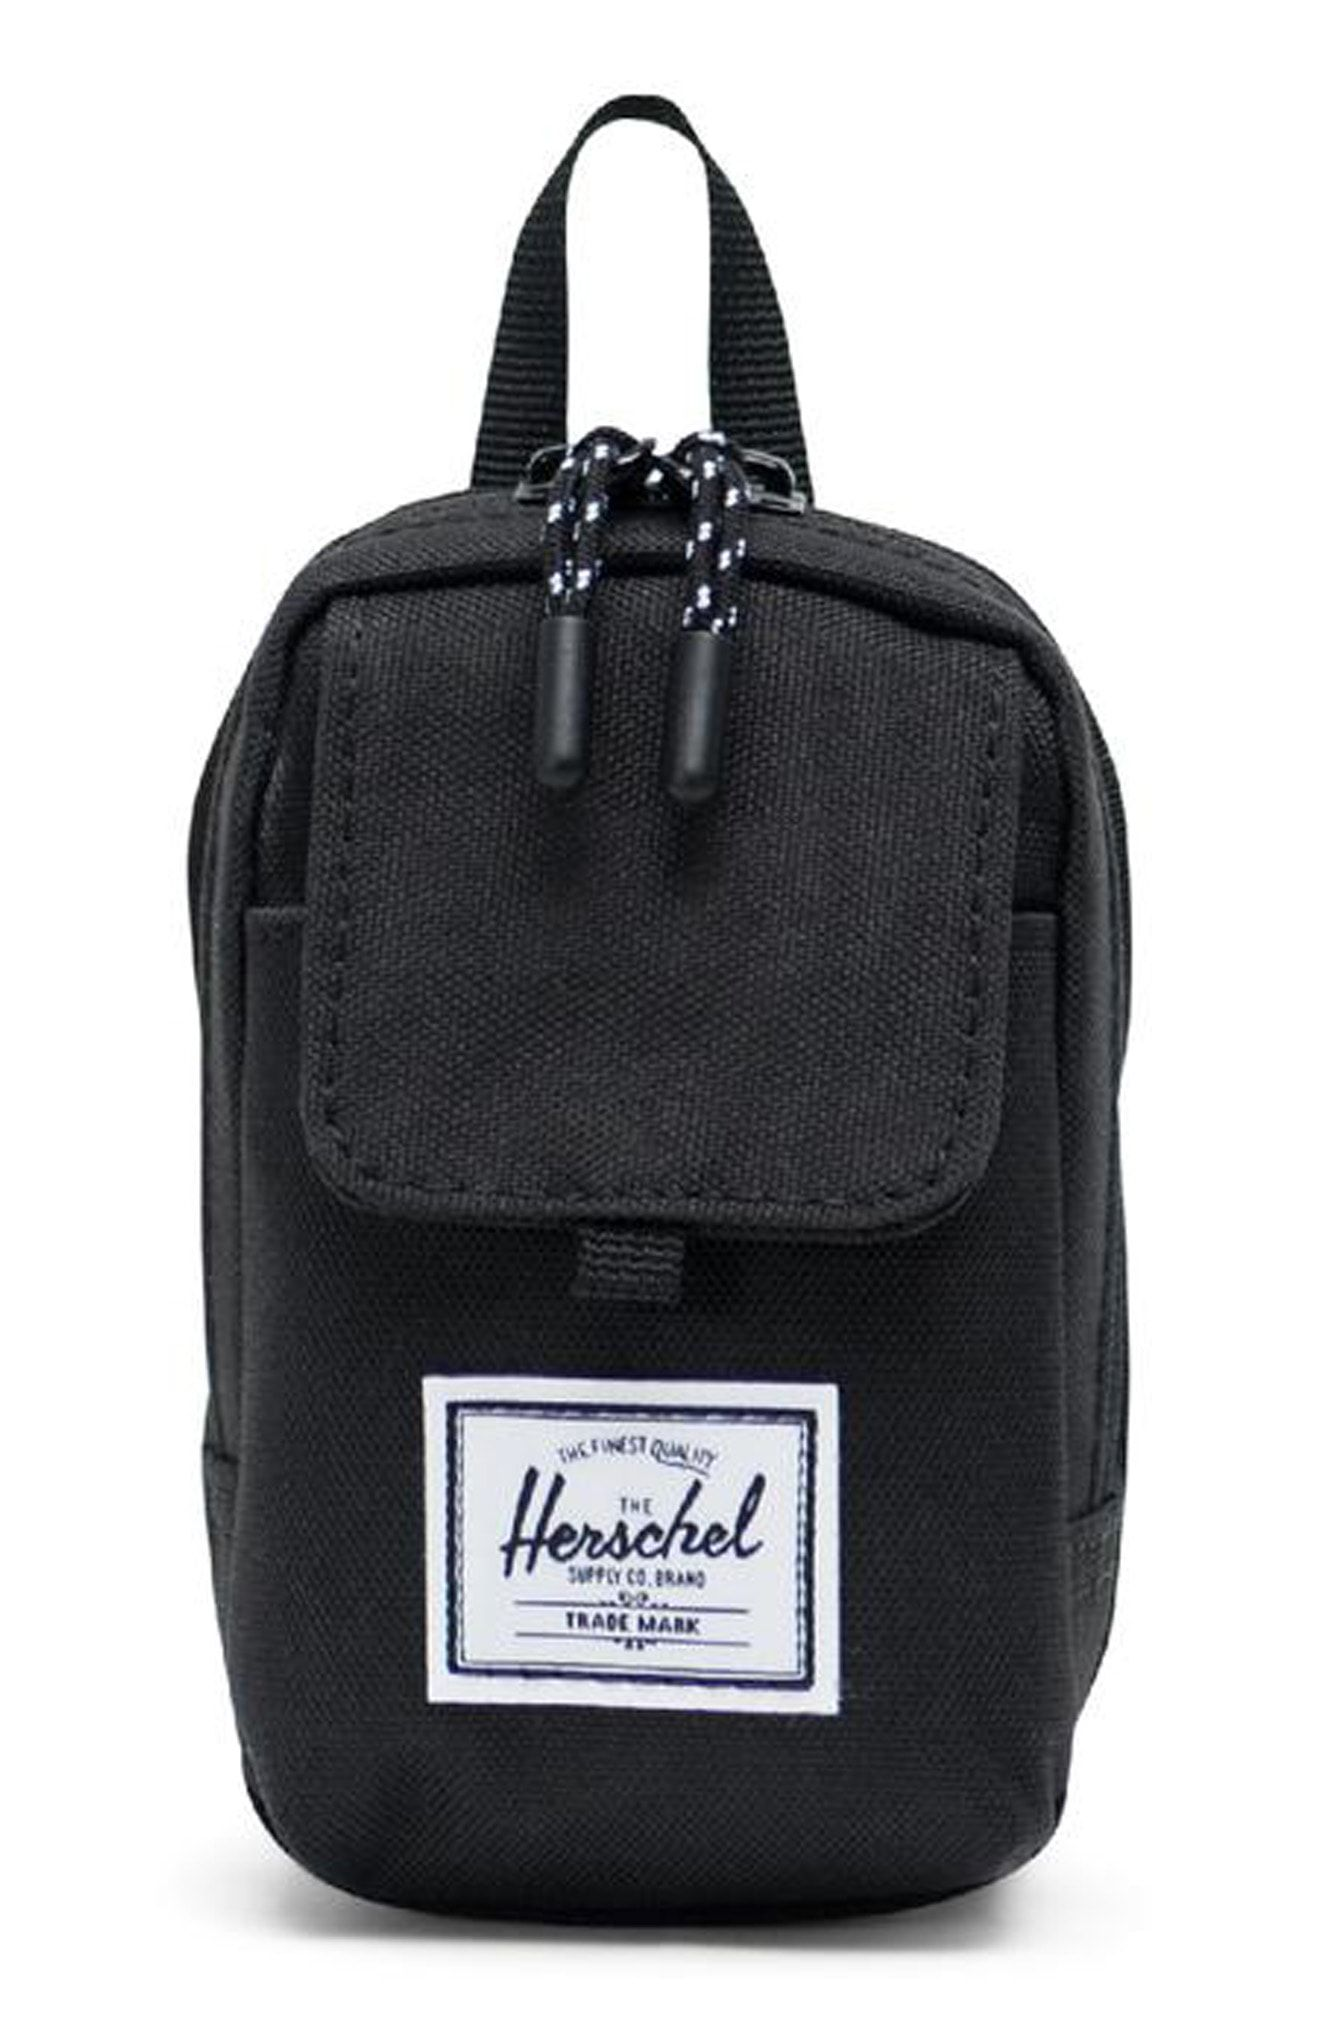 1aef502d6b97 HERSCHEL SUPPLY CO. SMALL FORM SHOULDER BAG - BLACK. #herschelsupplyco. # bags #shoulder bags